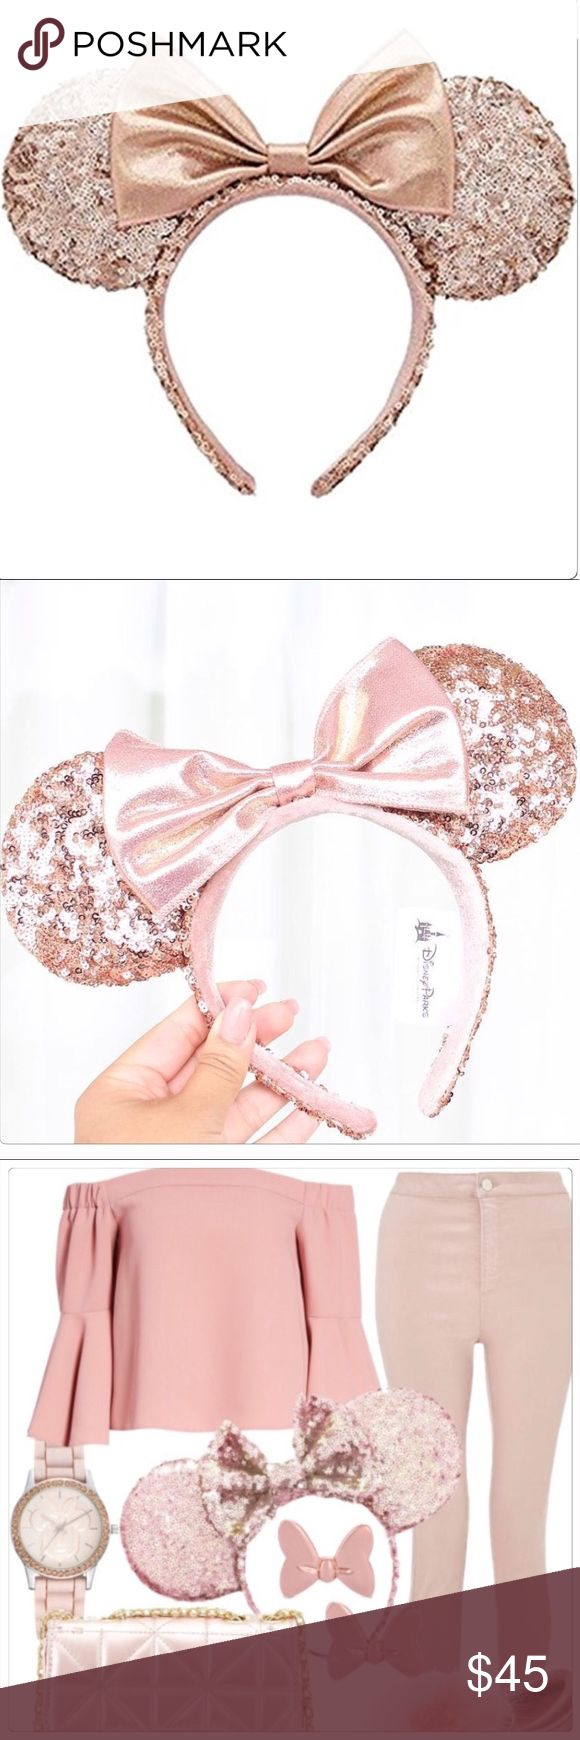 NWT Authentic Disney rose gold ears headband LAST CHANCE Sequined Minnie Ears headband is the hottest accessory with rose gold bow Magic. Created especially for Walt Disney World Resort and Disneyland Resort.  These are authentic Disney ears.  Sequined, padded ears & headband Contrast glittery fabric bow Velour no-slip interior band The bare necessities All man-made materials 8 1/2'' H x 10'' W x 1'' D (ears 4'' Diameter). Disney Accessories Hair Accessories